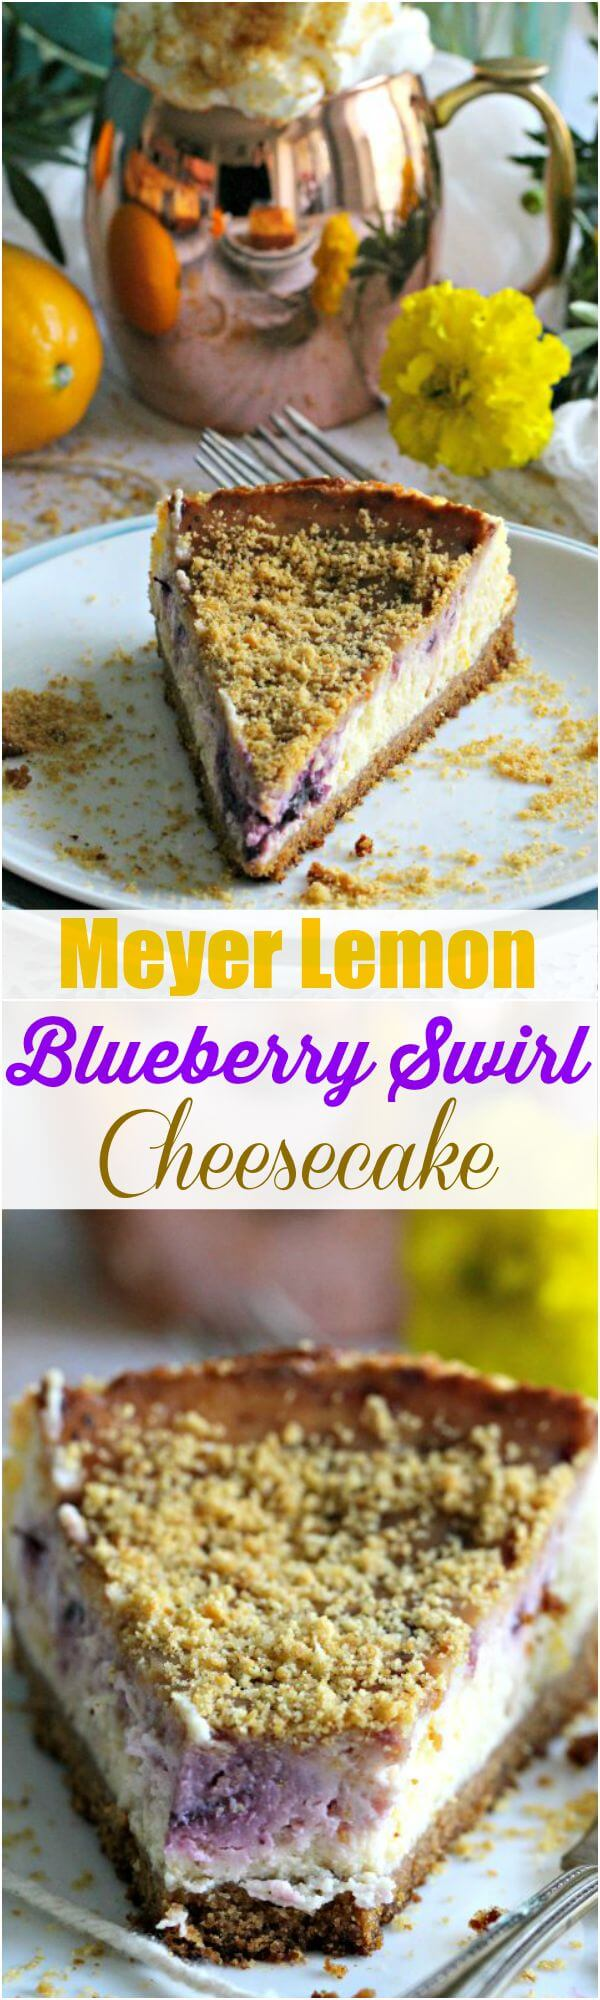 Meyer Lemon Blueberry Cheesecake Recipe